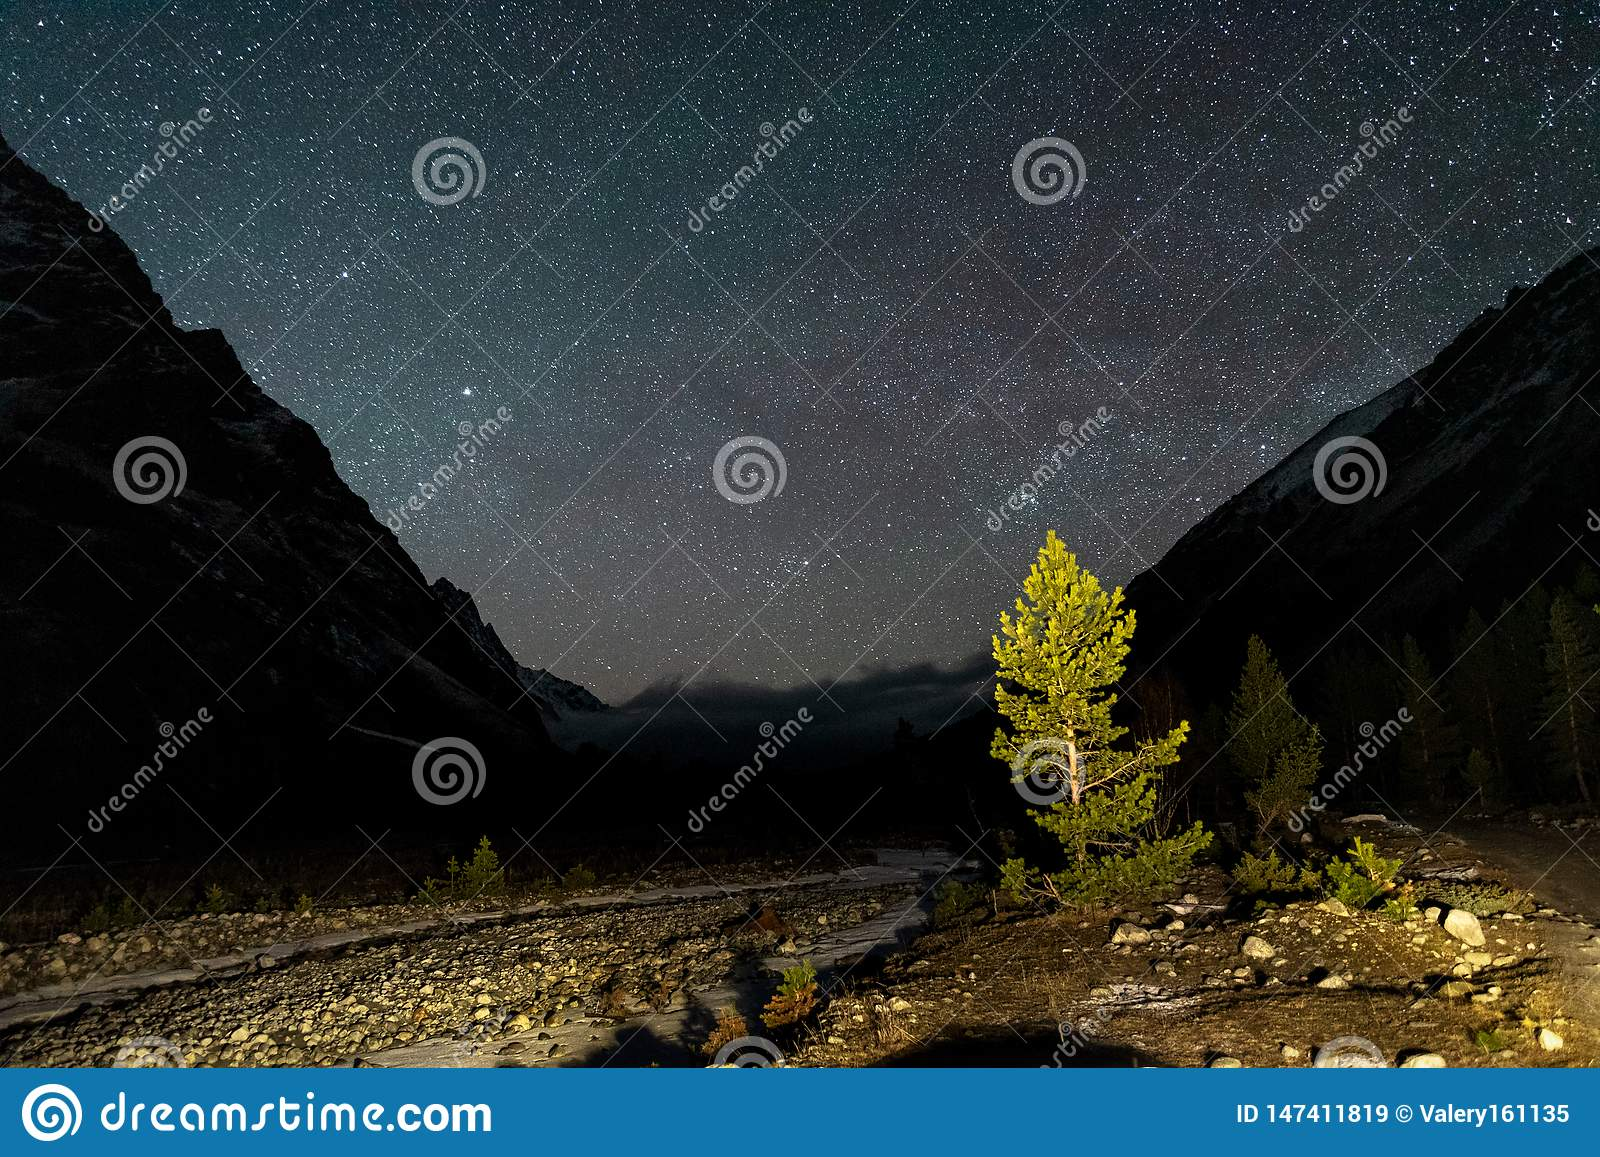 Coniferous trees with mountain gorge at night under a starry sky